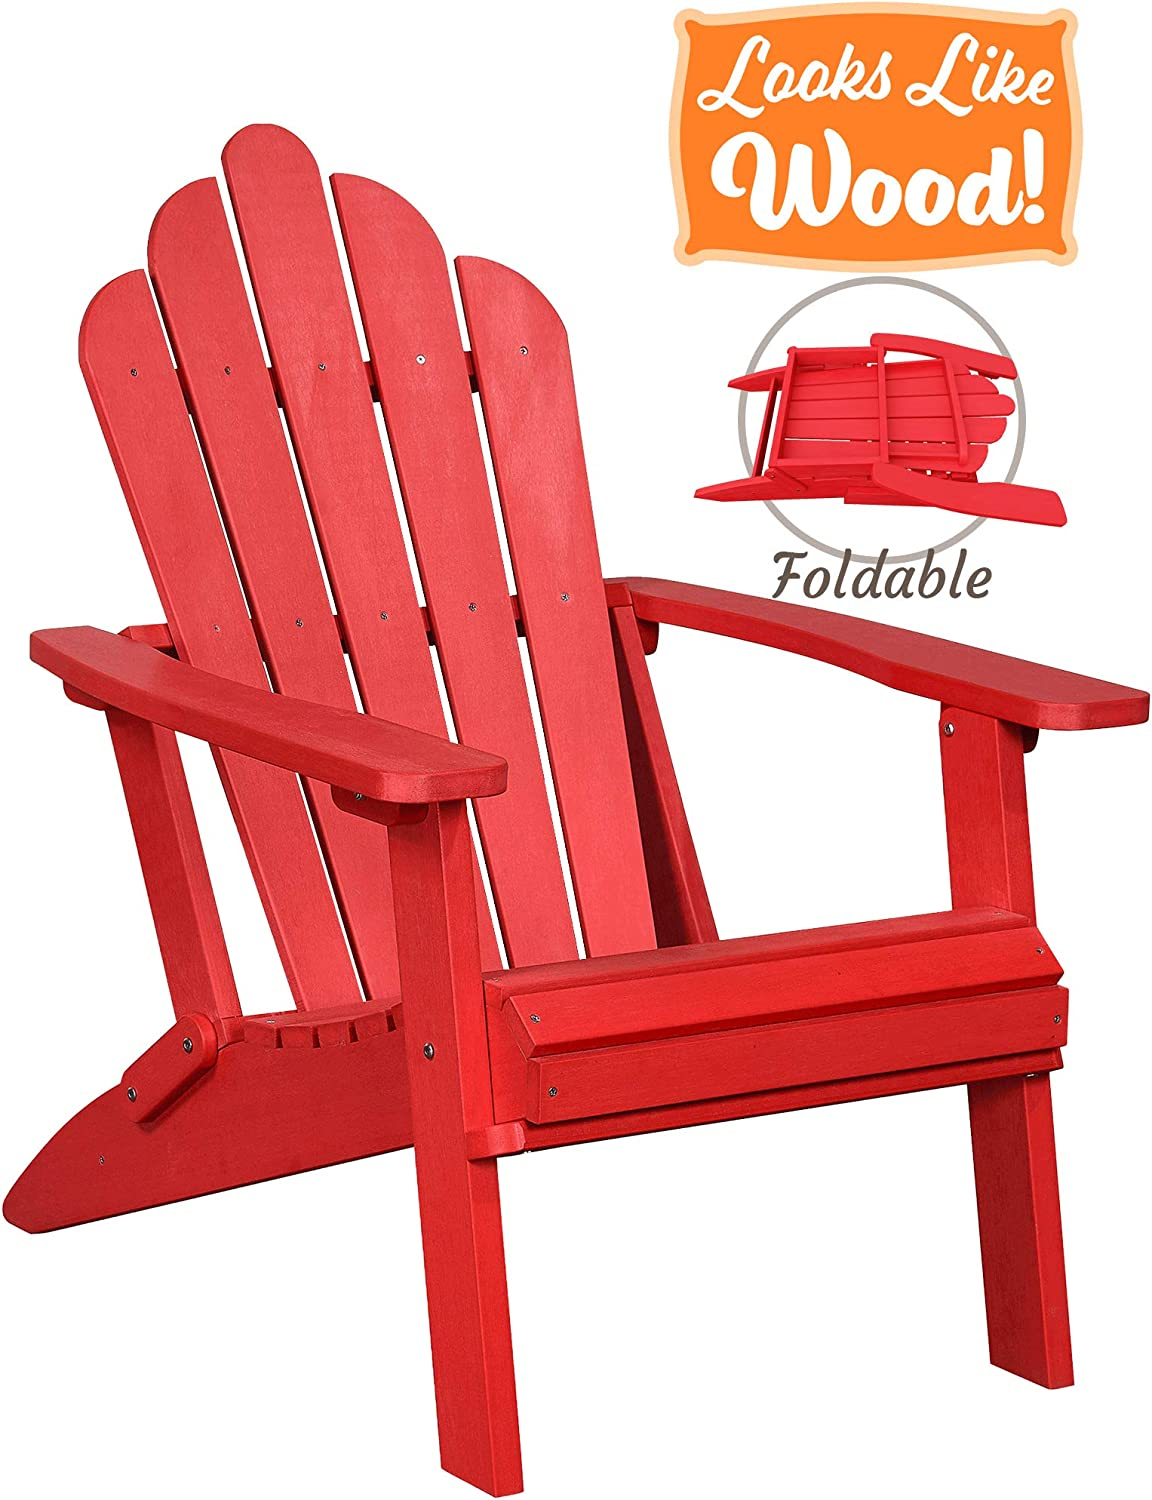 PolyTEAK Seashell Oversized Folding Poly Adirondack Chair, Cardinal Red Adult-Size, Weather Resistant, Made from Plastic